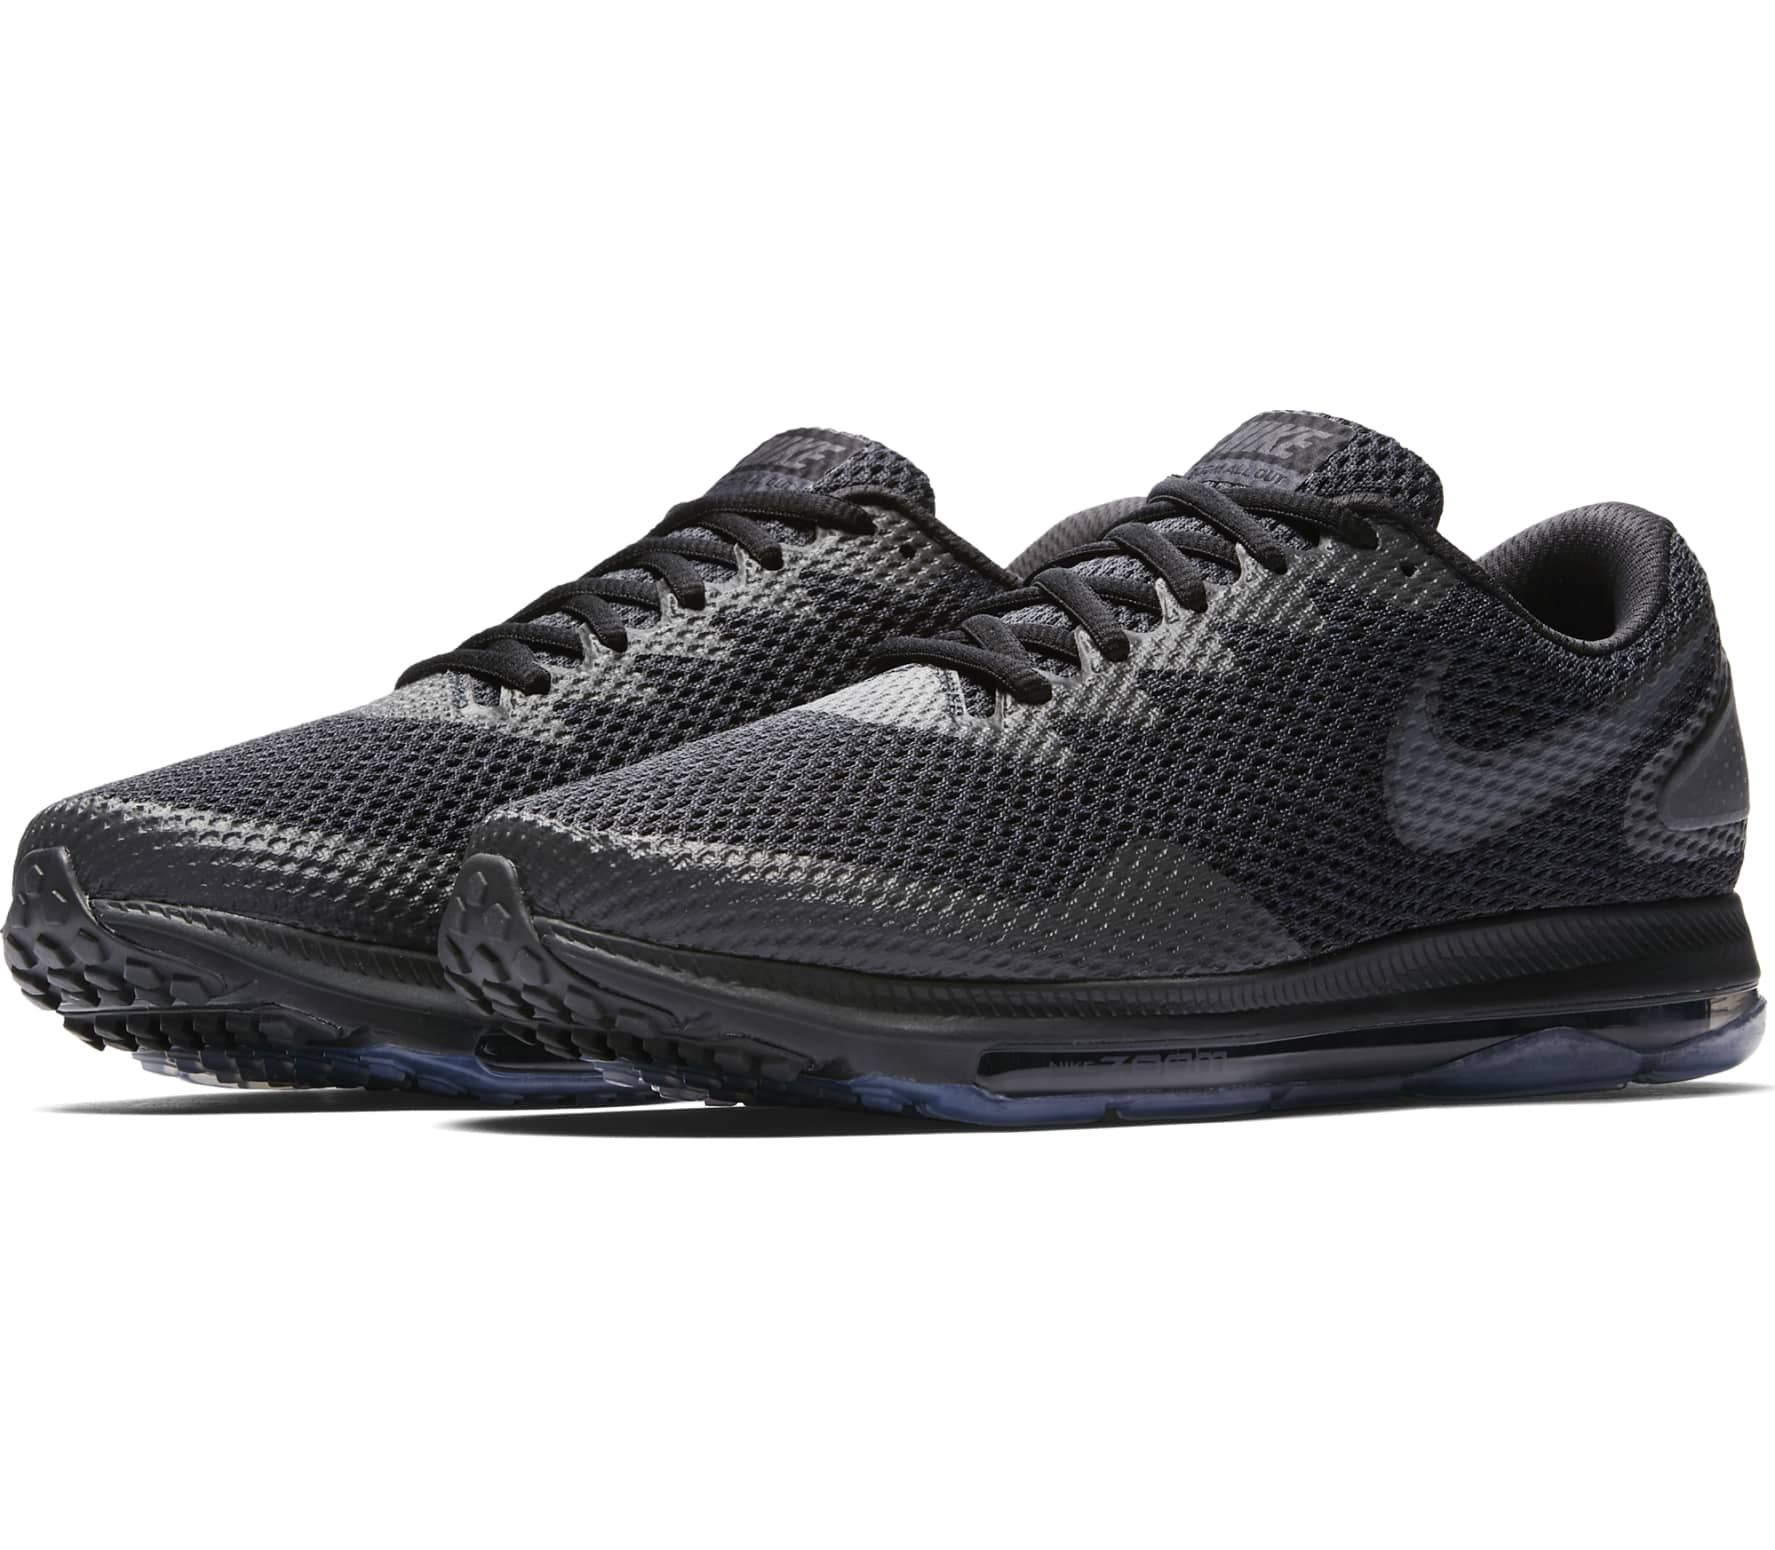 Nike Zoom All Out Low 2 Hombre Zapatos para correr (negro/gris